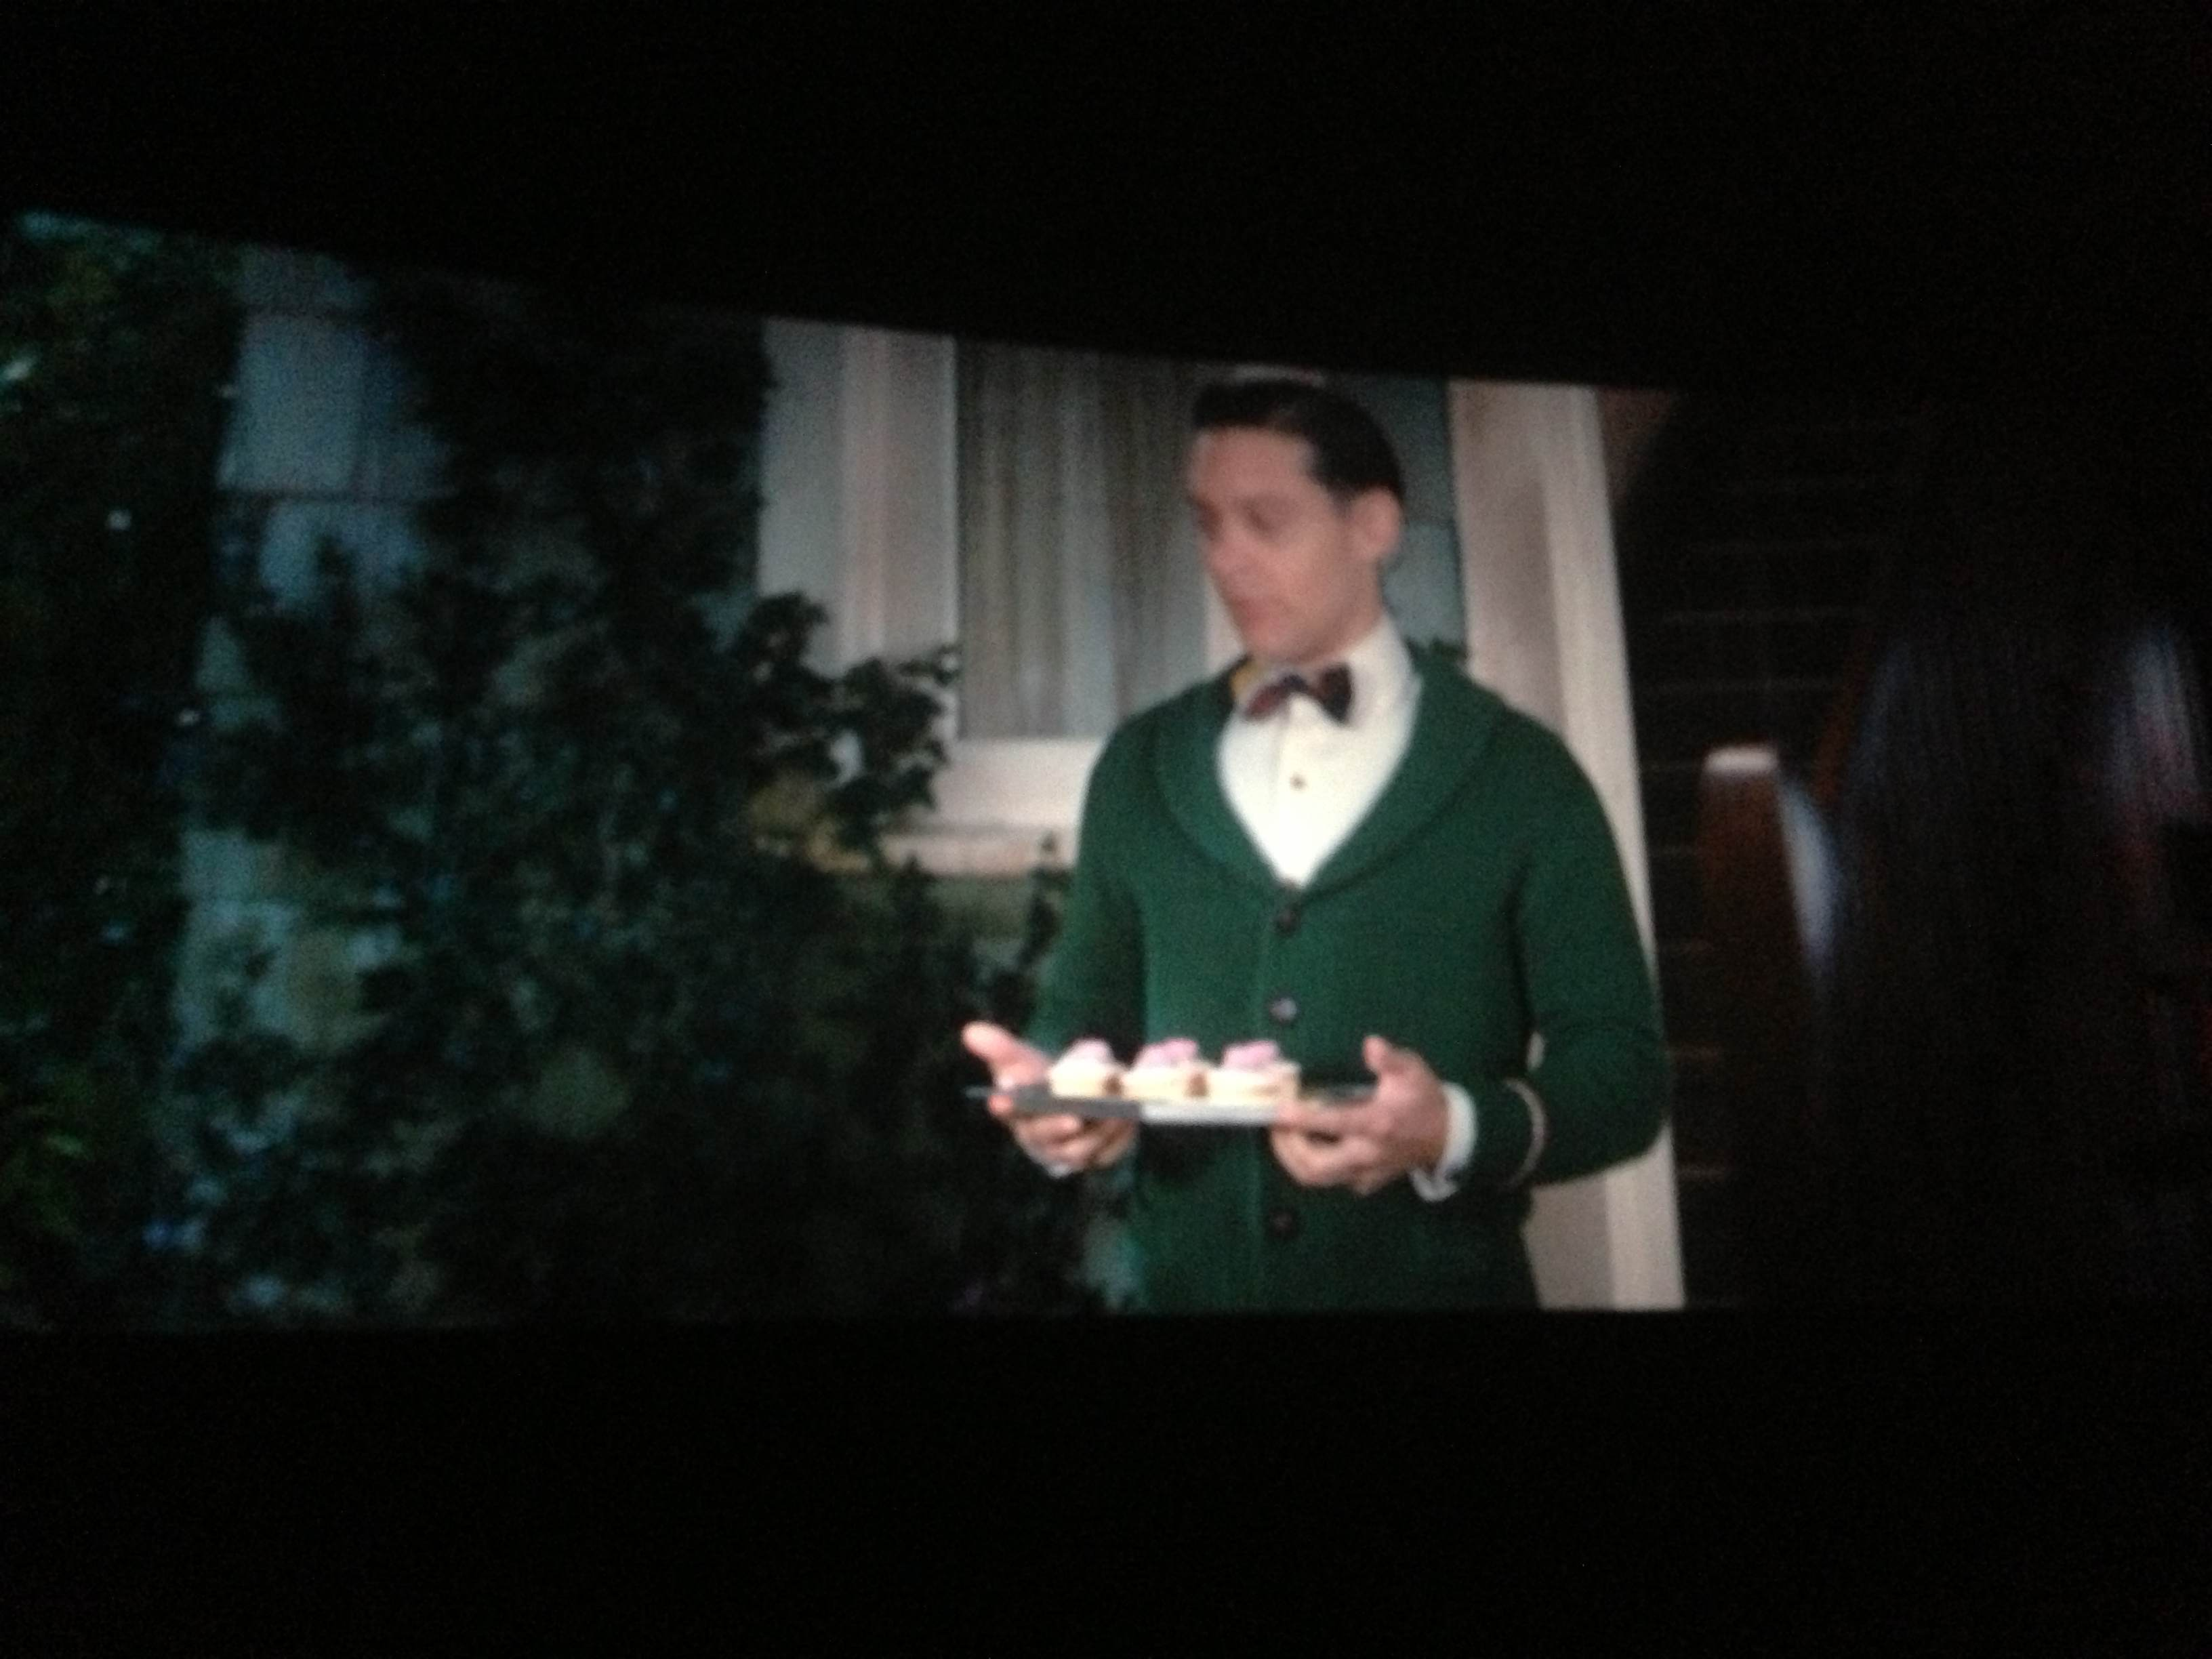 nick carraway green cardigan